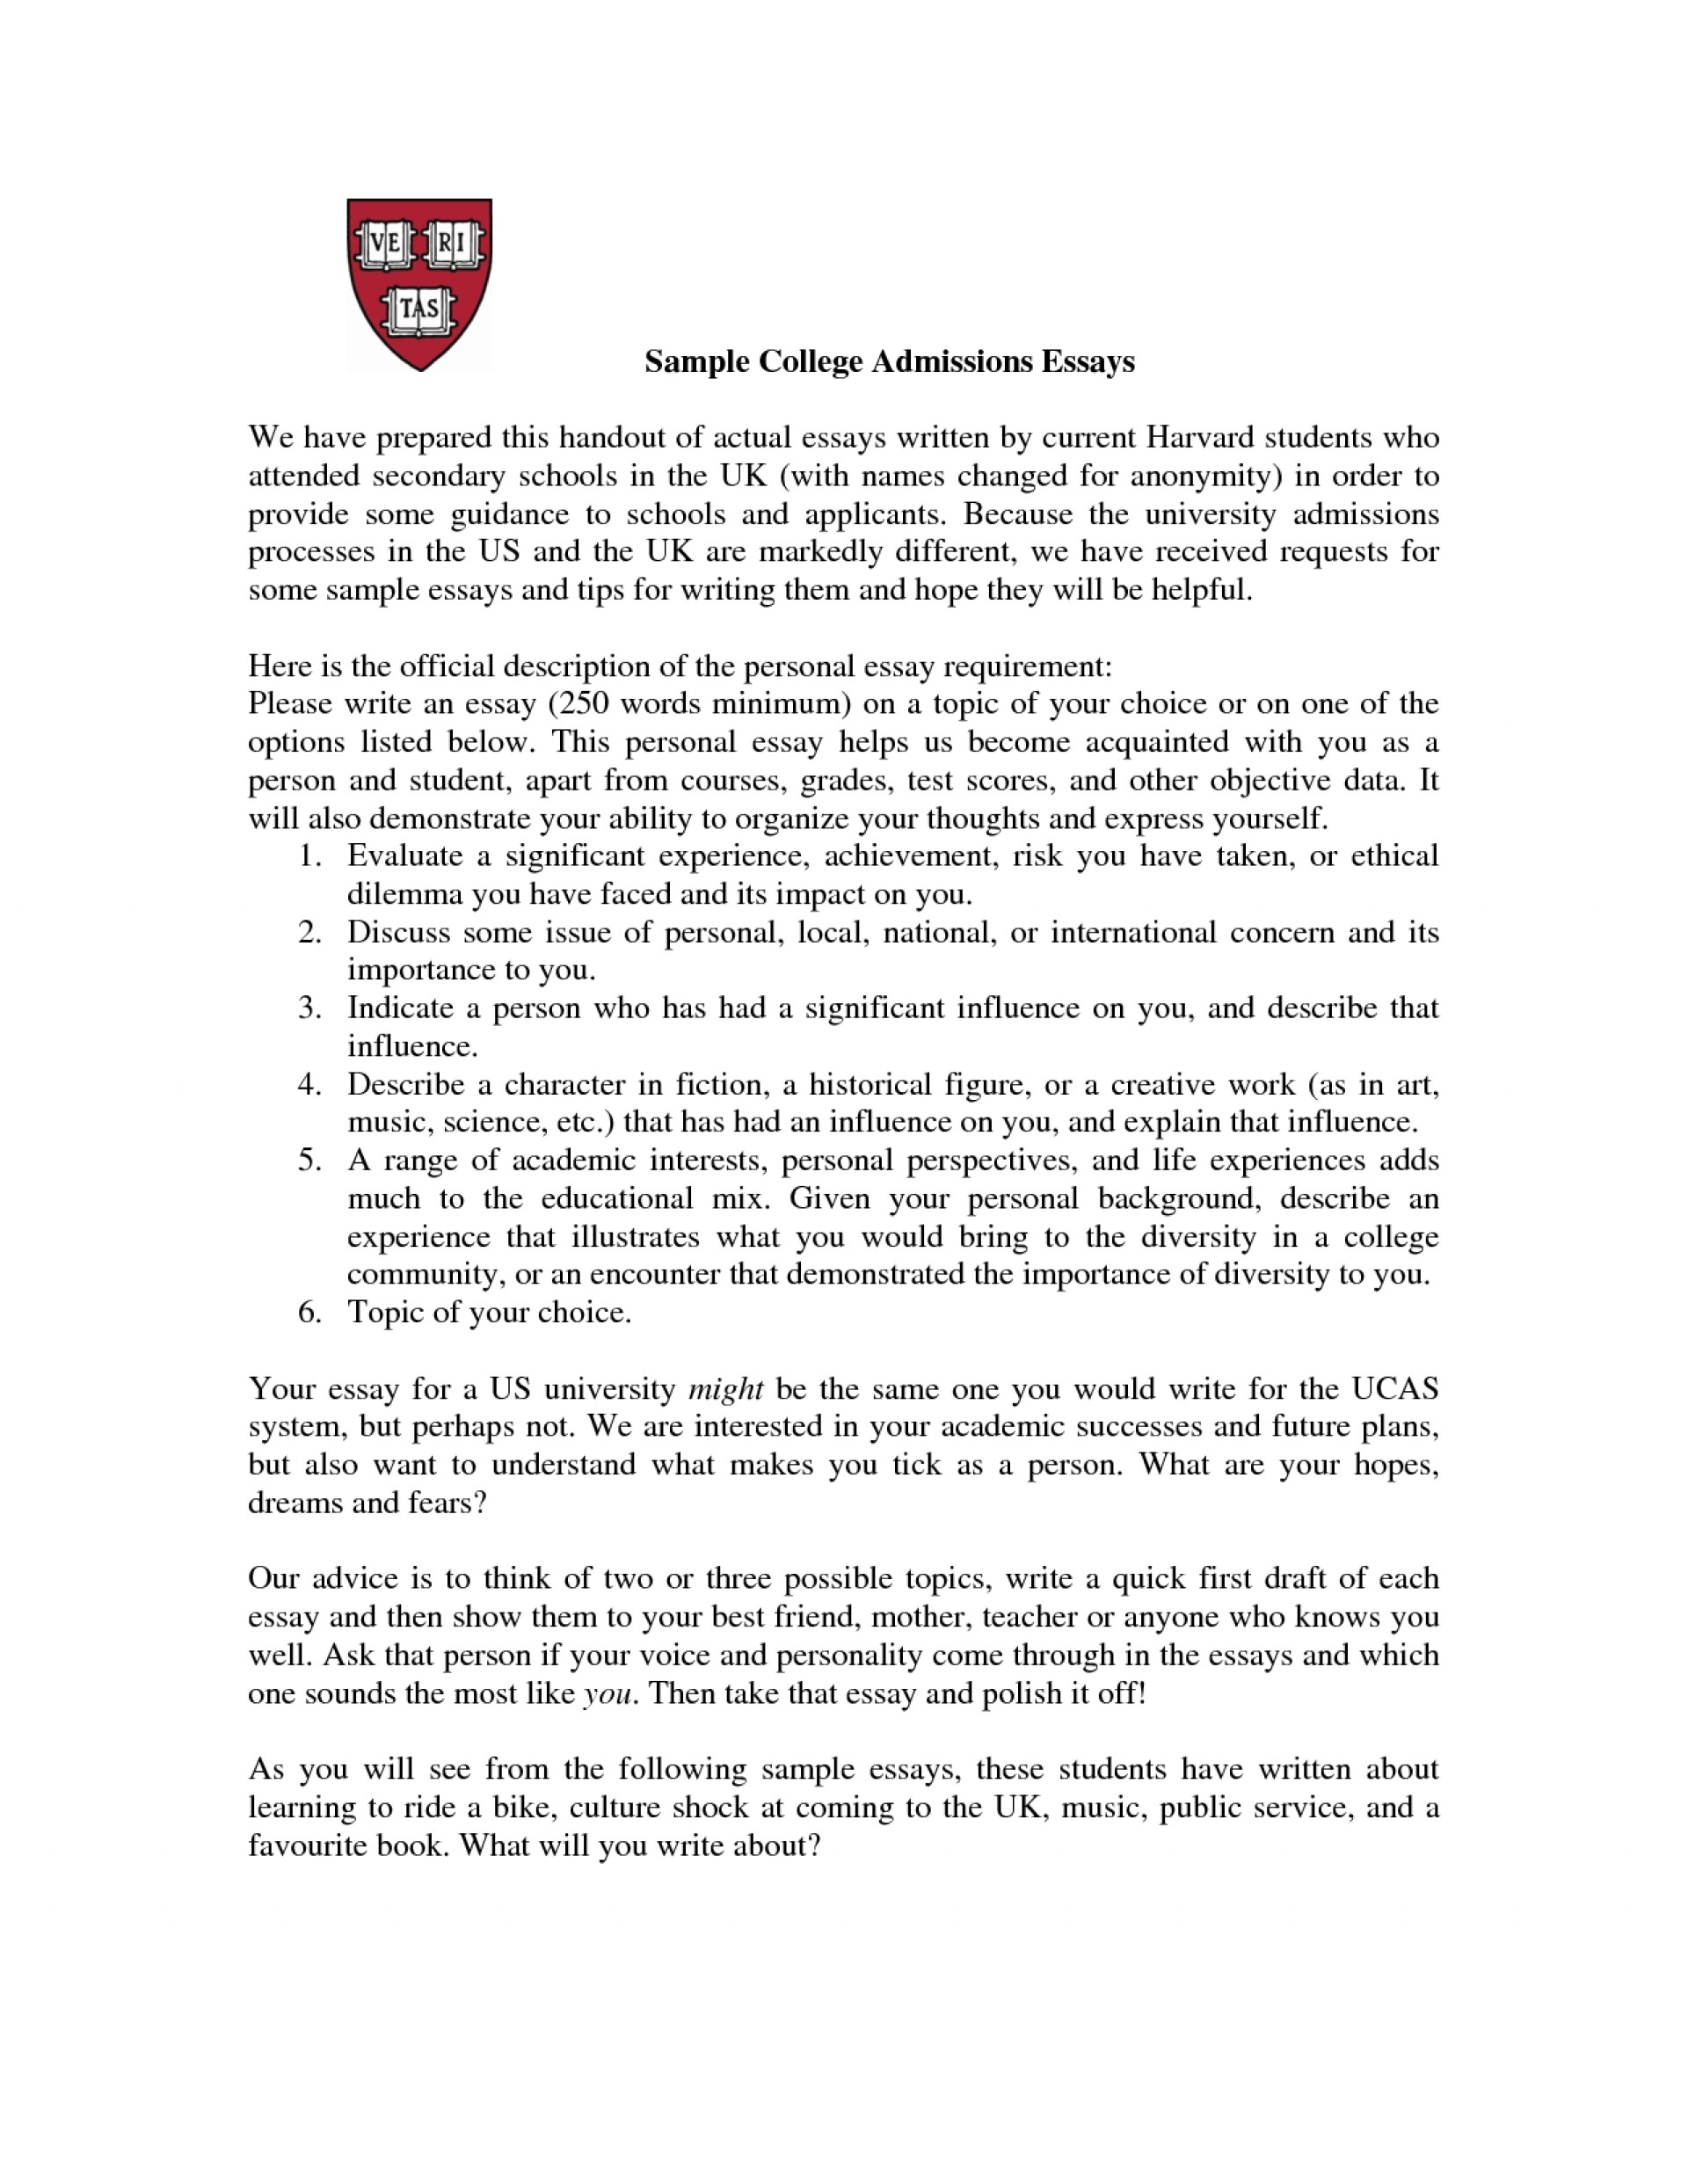 006 College Acceptance Essay Iafr4c5bwr Striking Admission Prompts 2015 Application Samples Engineering 1920